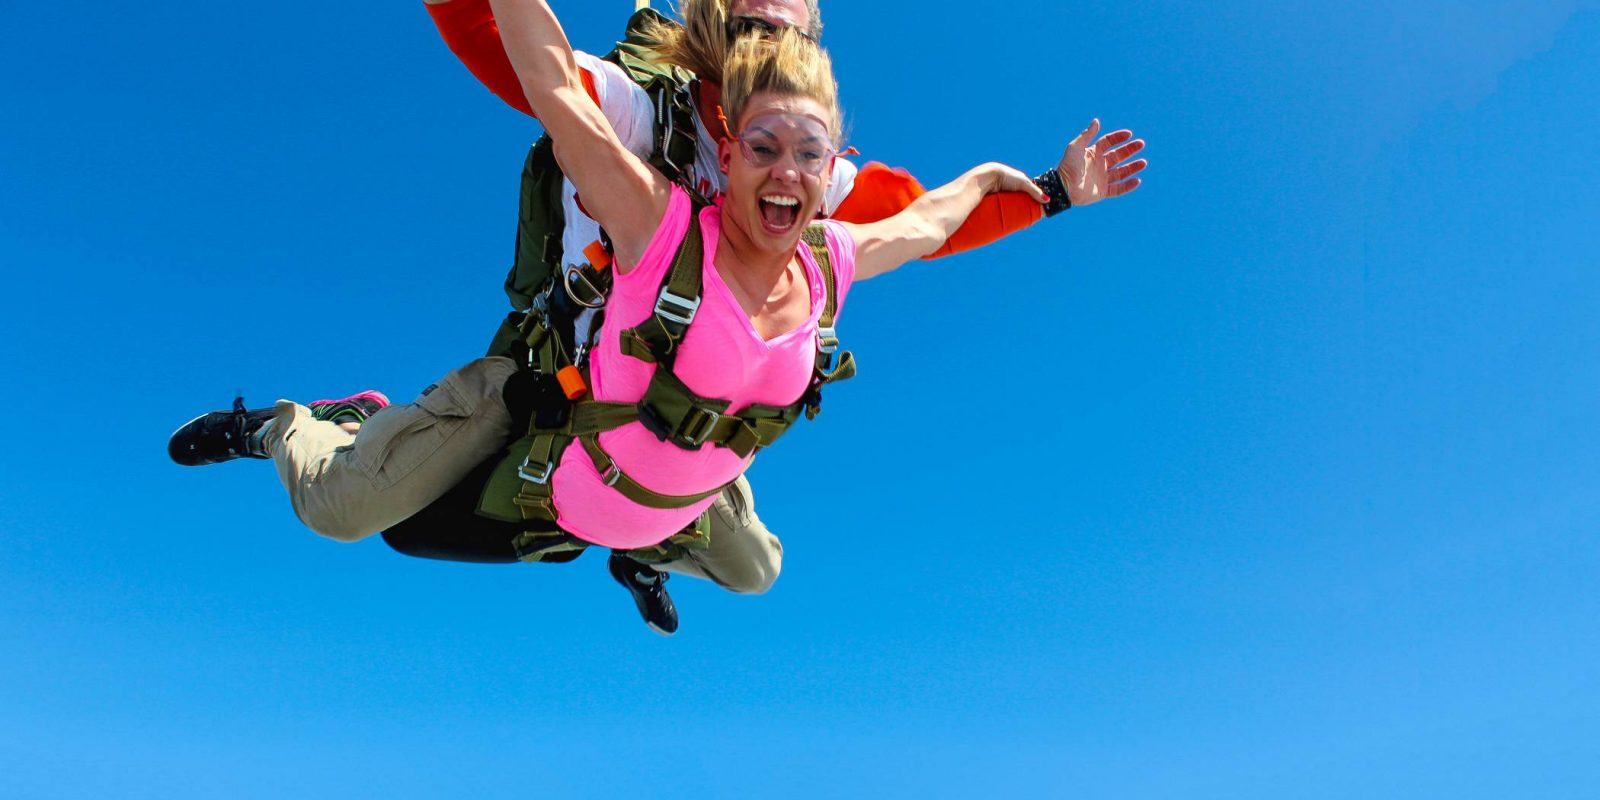 Woman tandem skydiving for the first time with an instructor